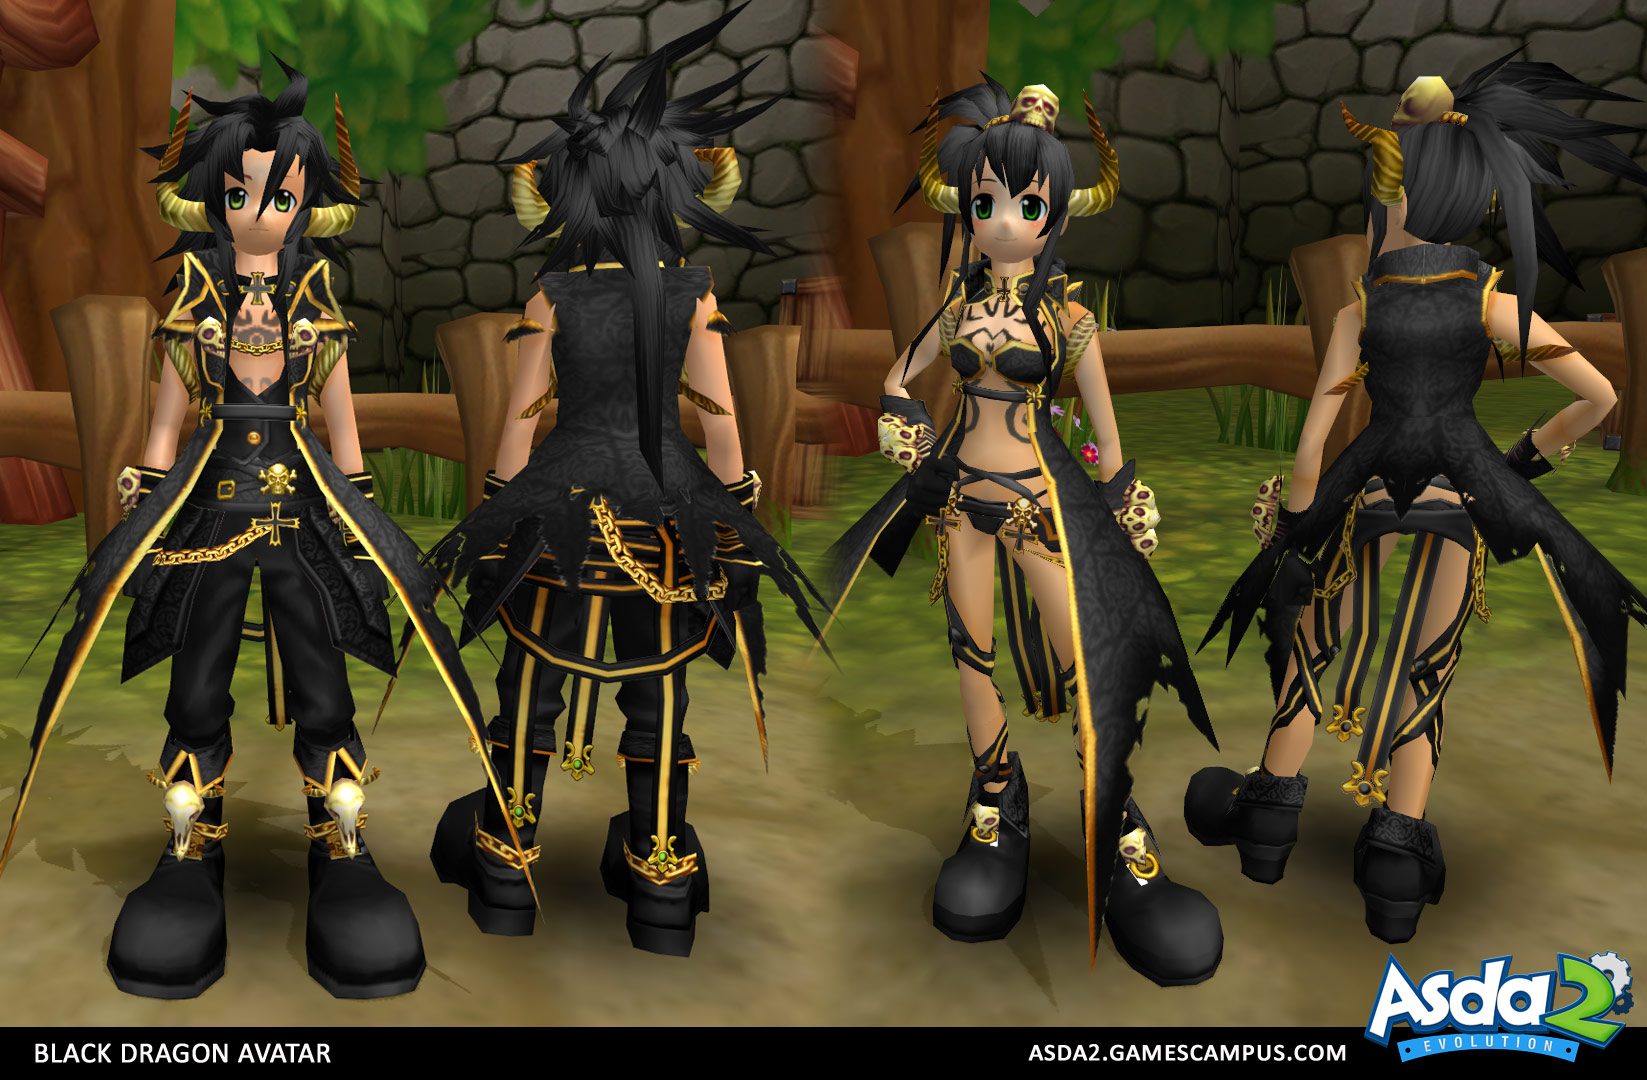 Best Anime MMORPG - Asda 2 - Black Dragon Set